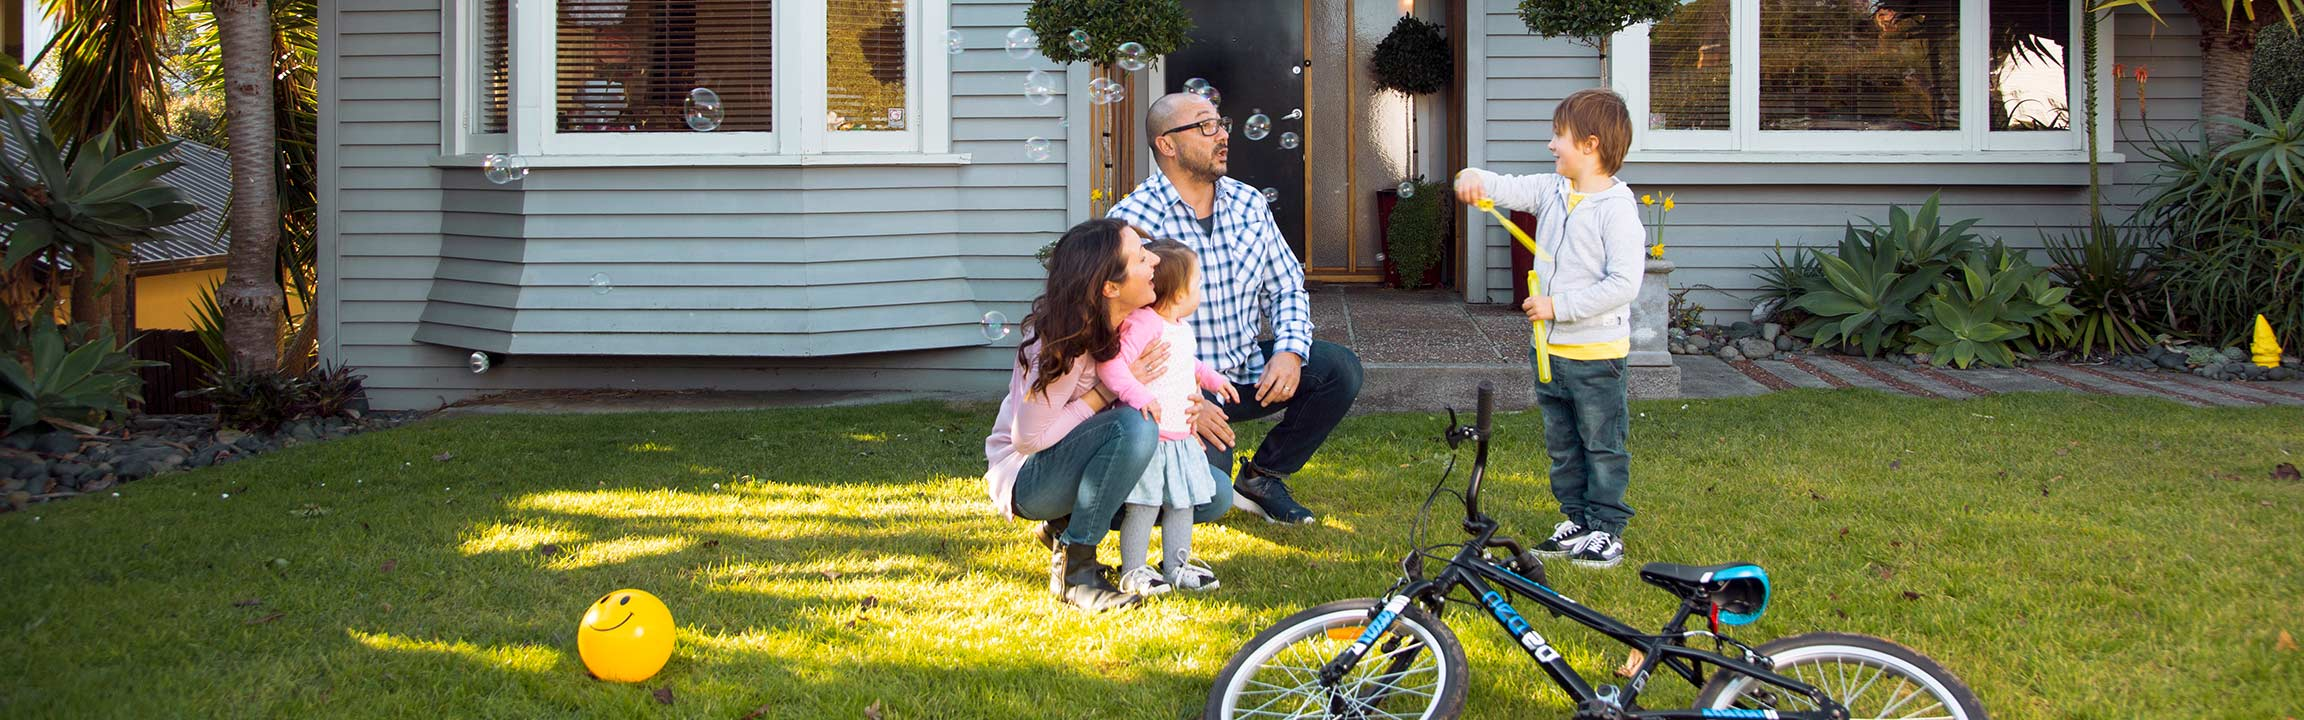 A family playing outside their house in the front yard with a bike, ball and blowing bubbles